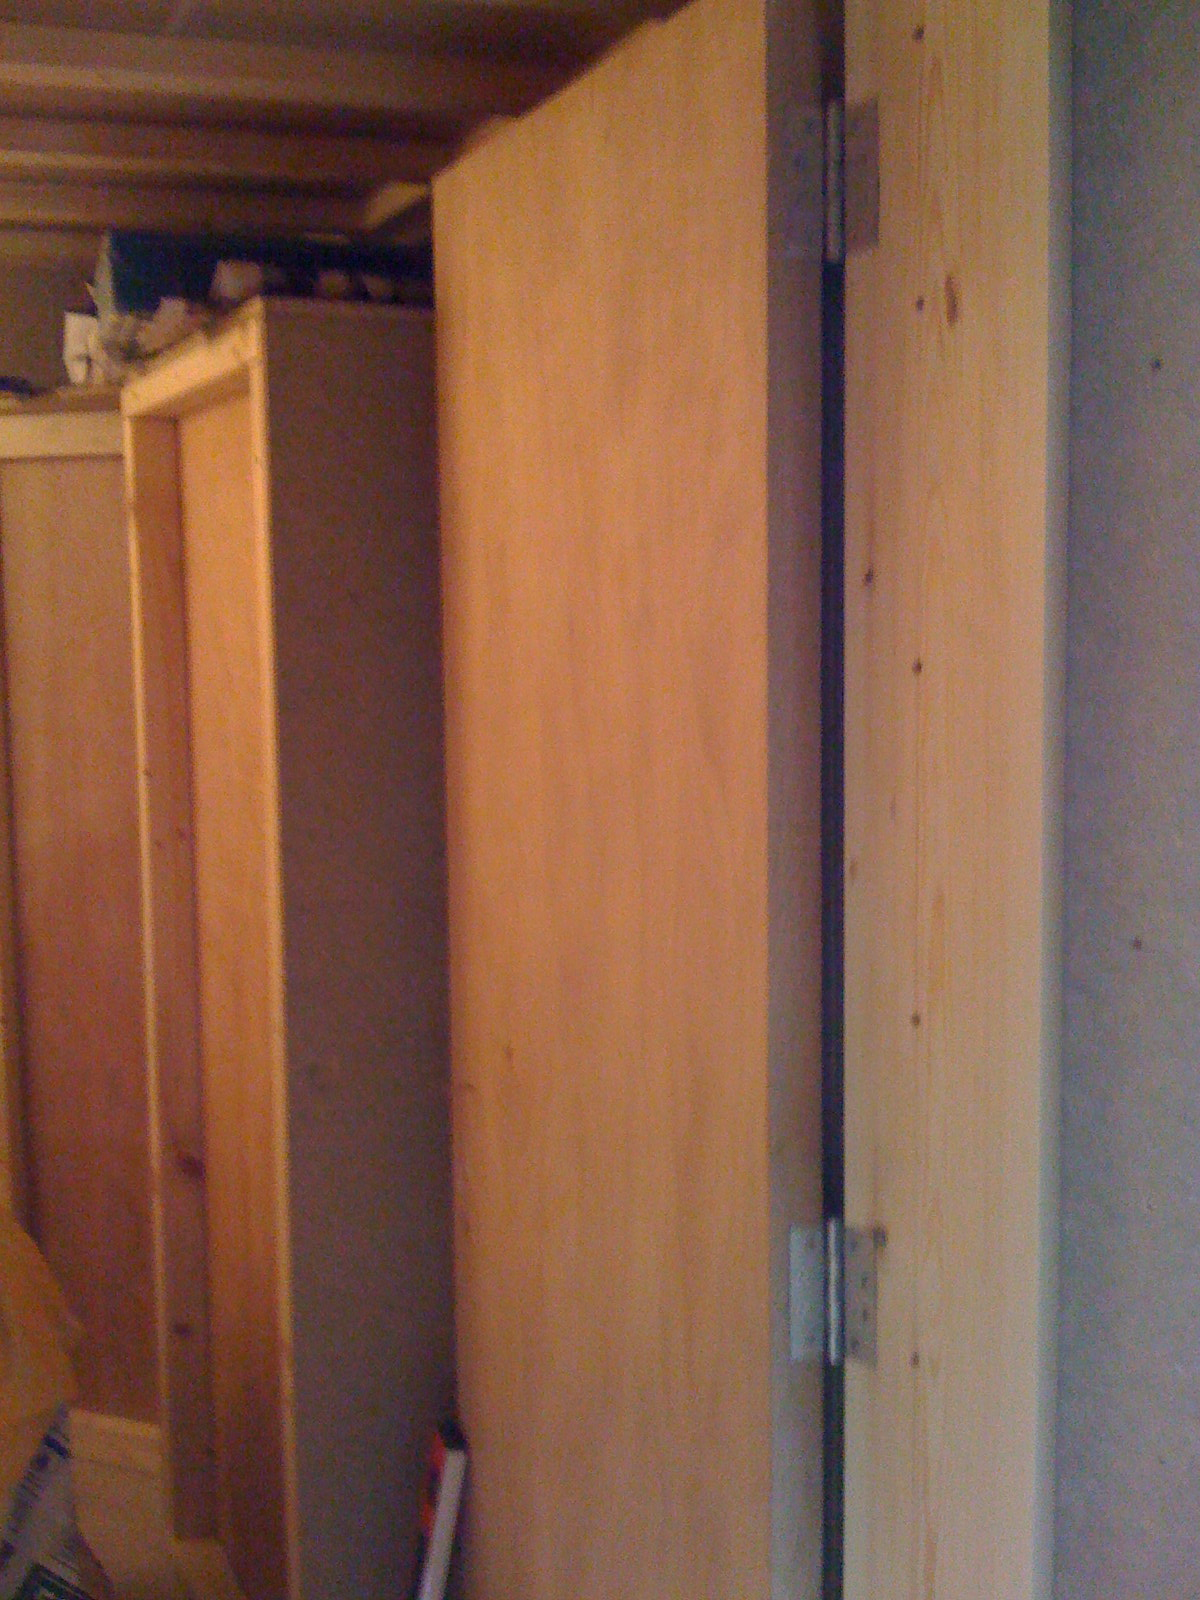 Think this looks easy? YOU try hanging a door with 1mm accuracy!